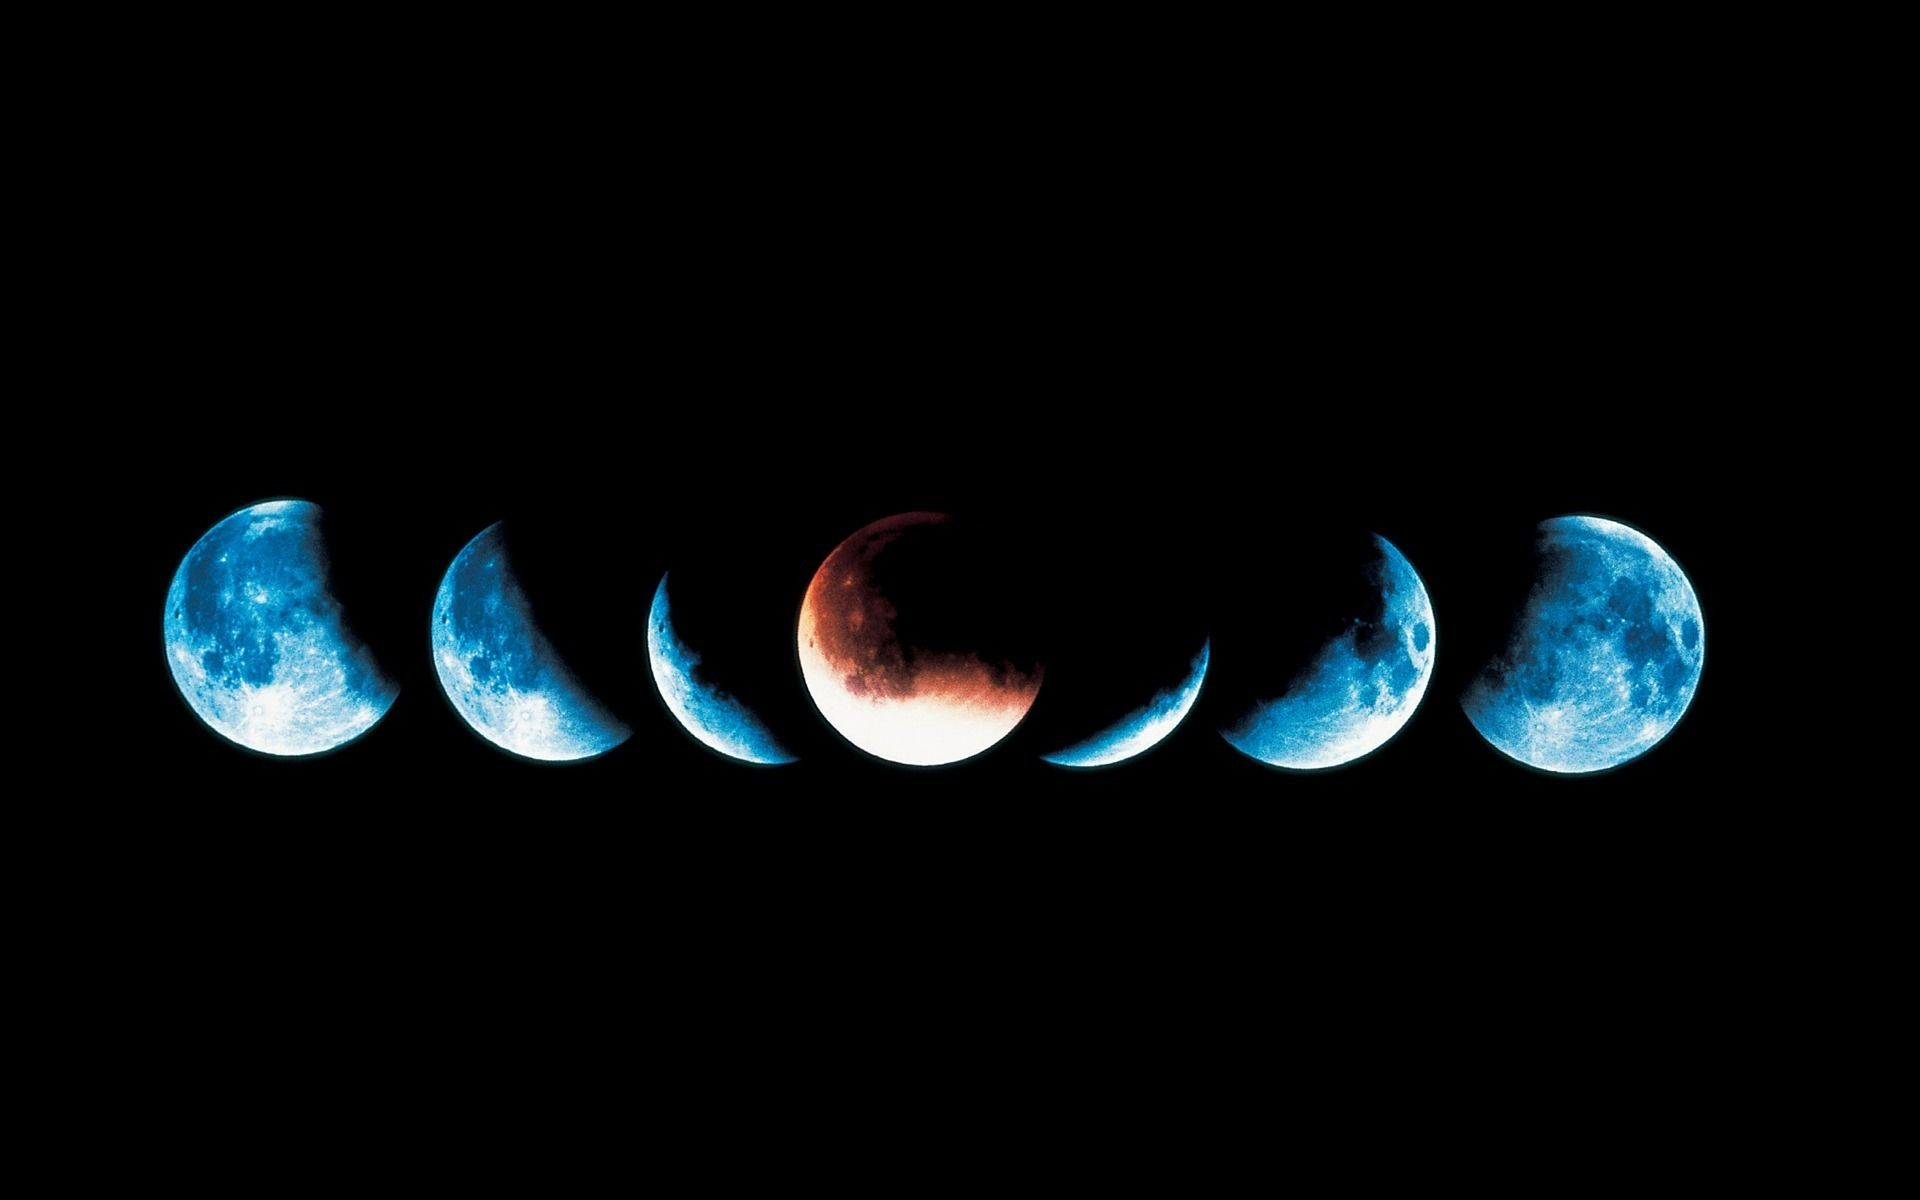 Moon eclips omslagfoto achtergrond